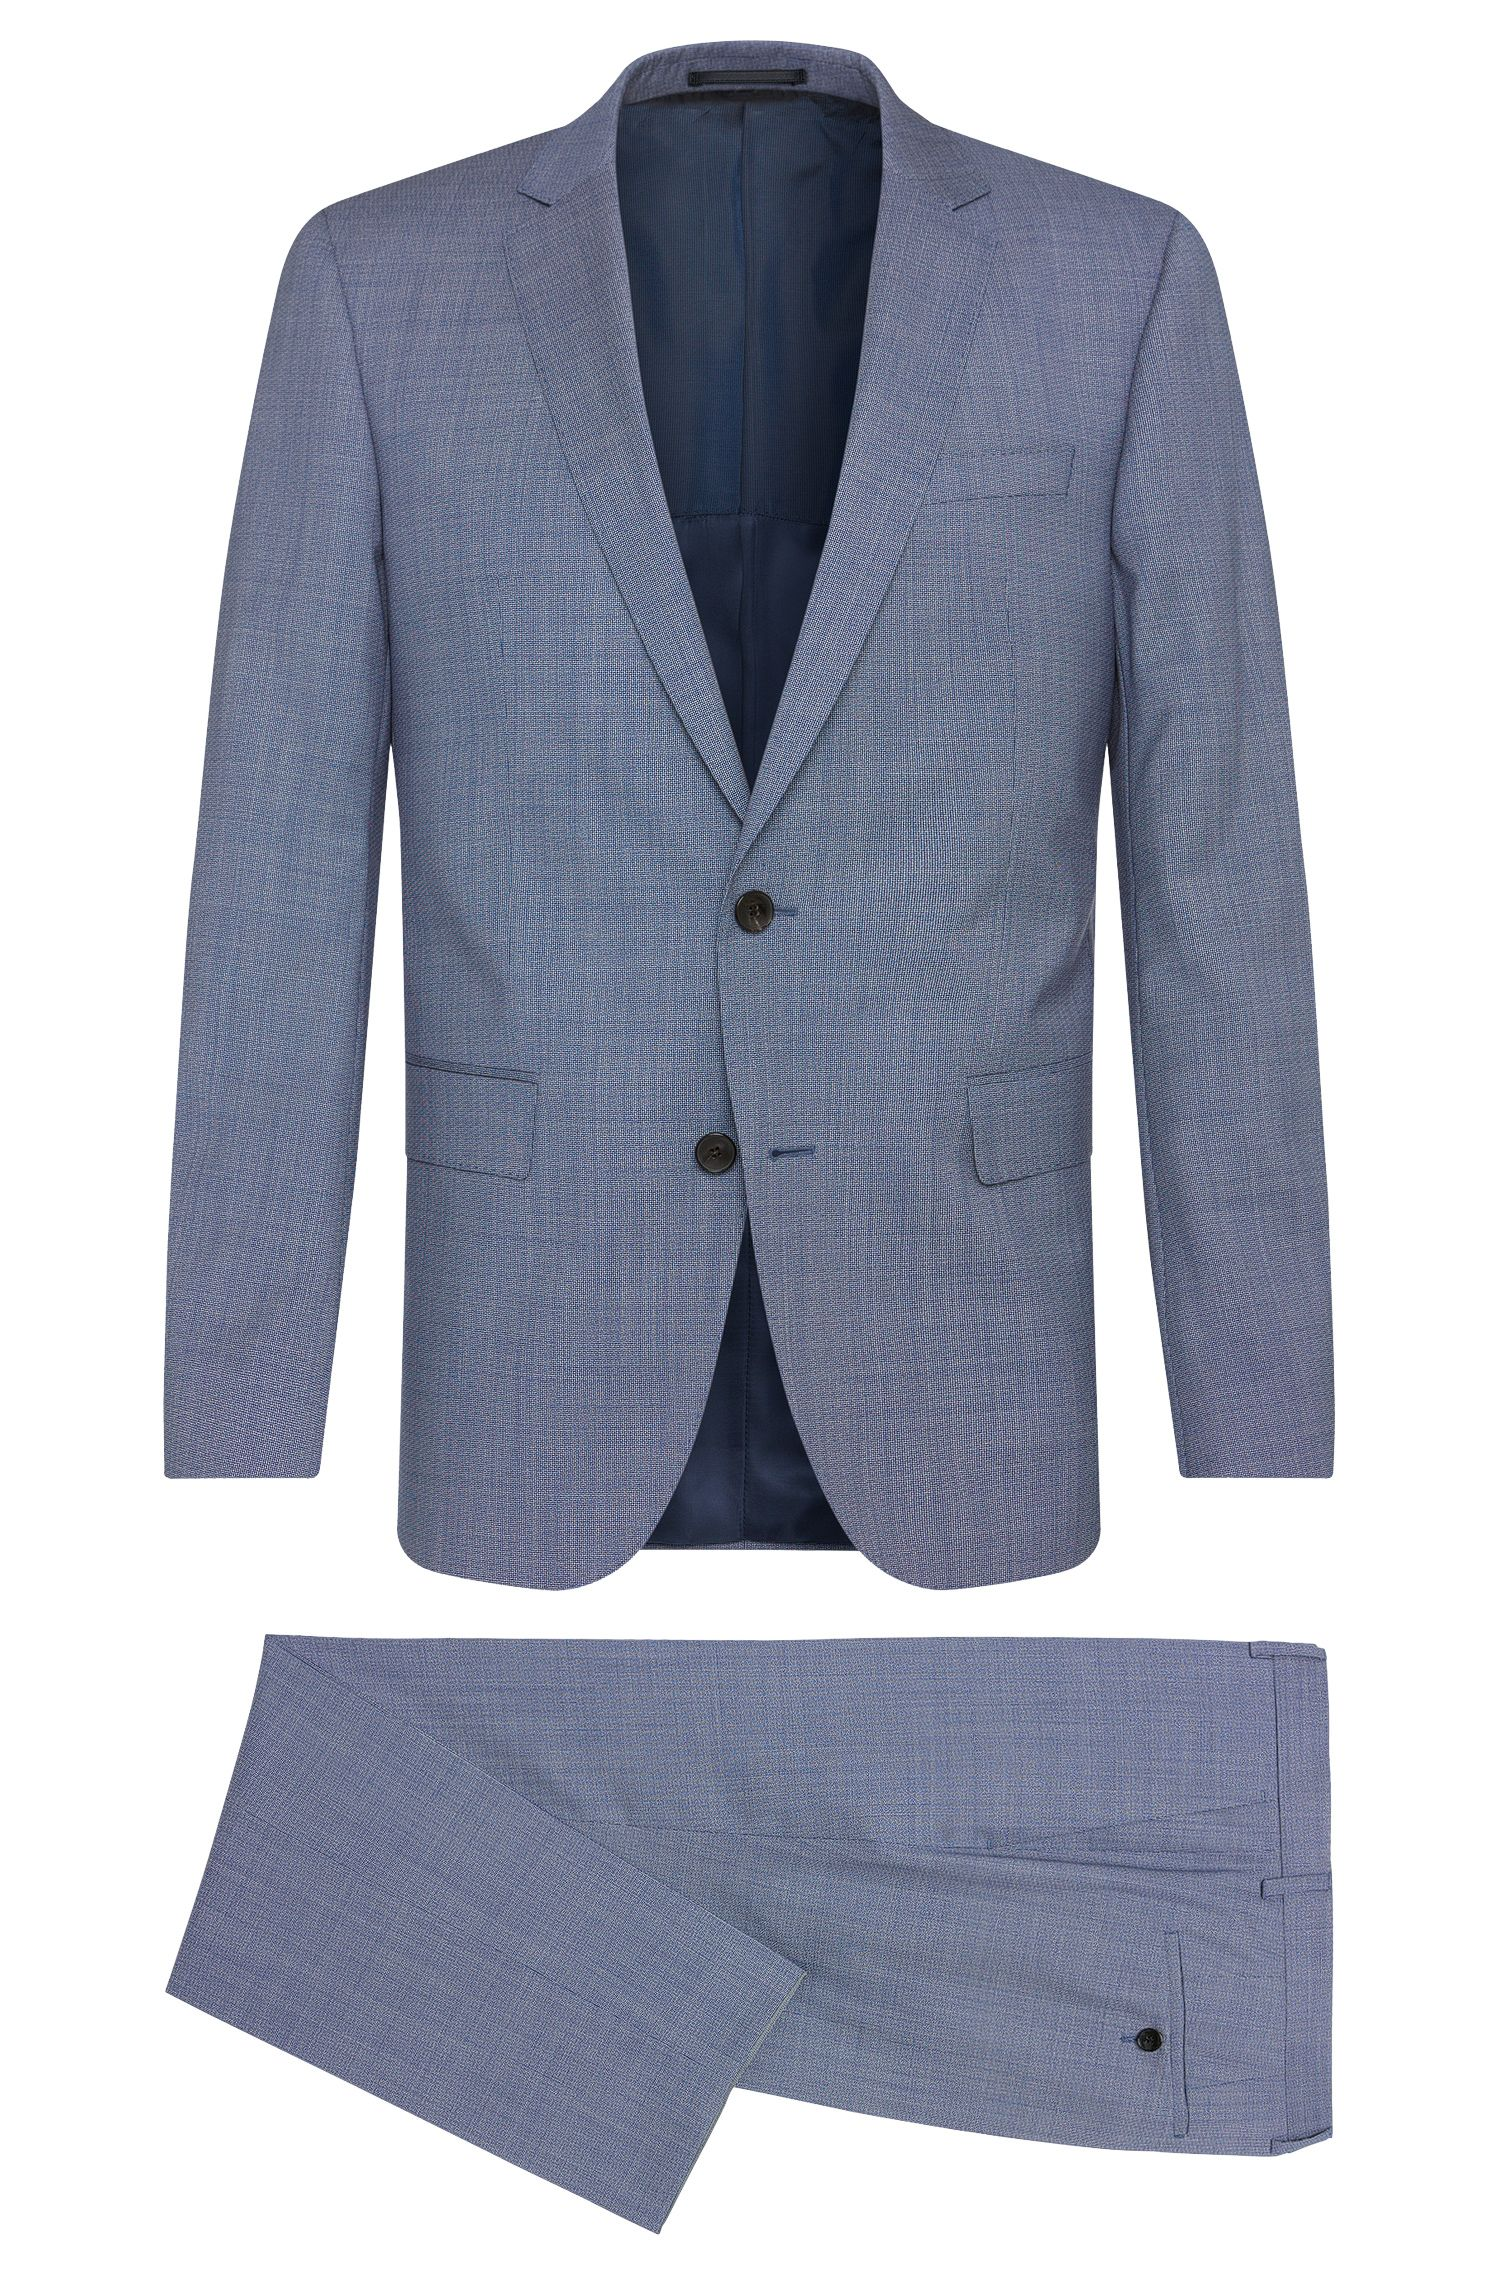 'Huge/Genius' | Slim Fit, Italian Super 130 Virgin Wool Suit